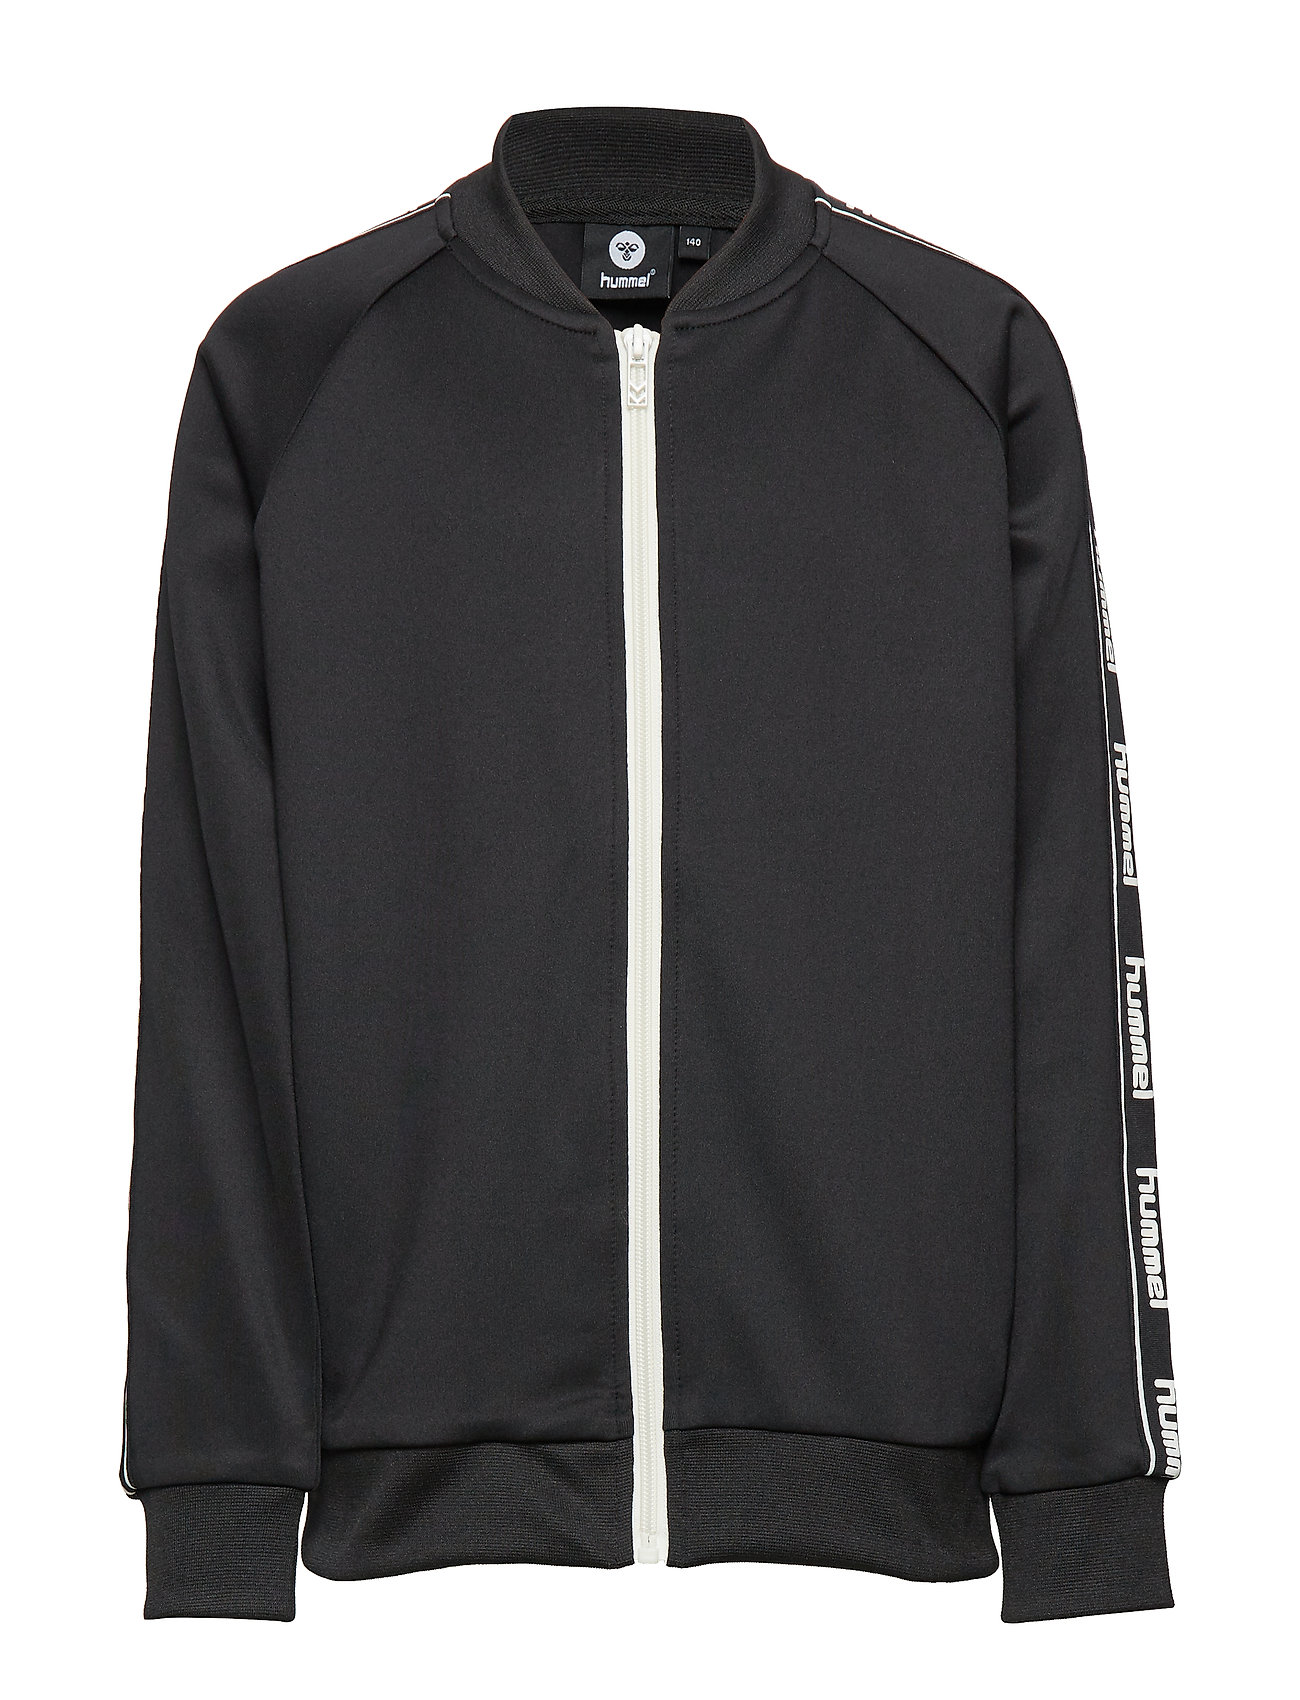 Hummel hmlJULIO ZIP JACKET - BLACK